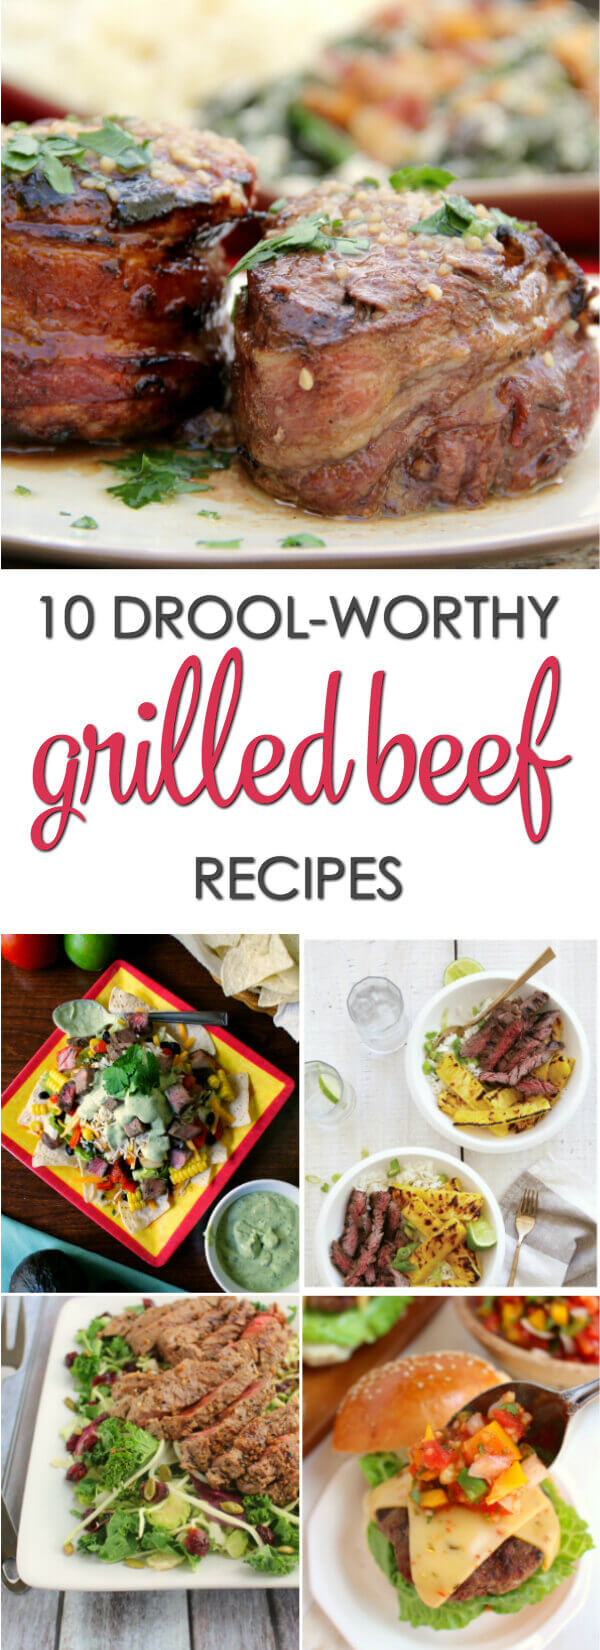 10 Grilled Beef Recipes - this collection has everything from grilled beef tenderloin recipes to burgers and kebobs